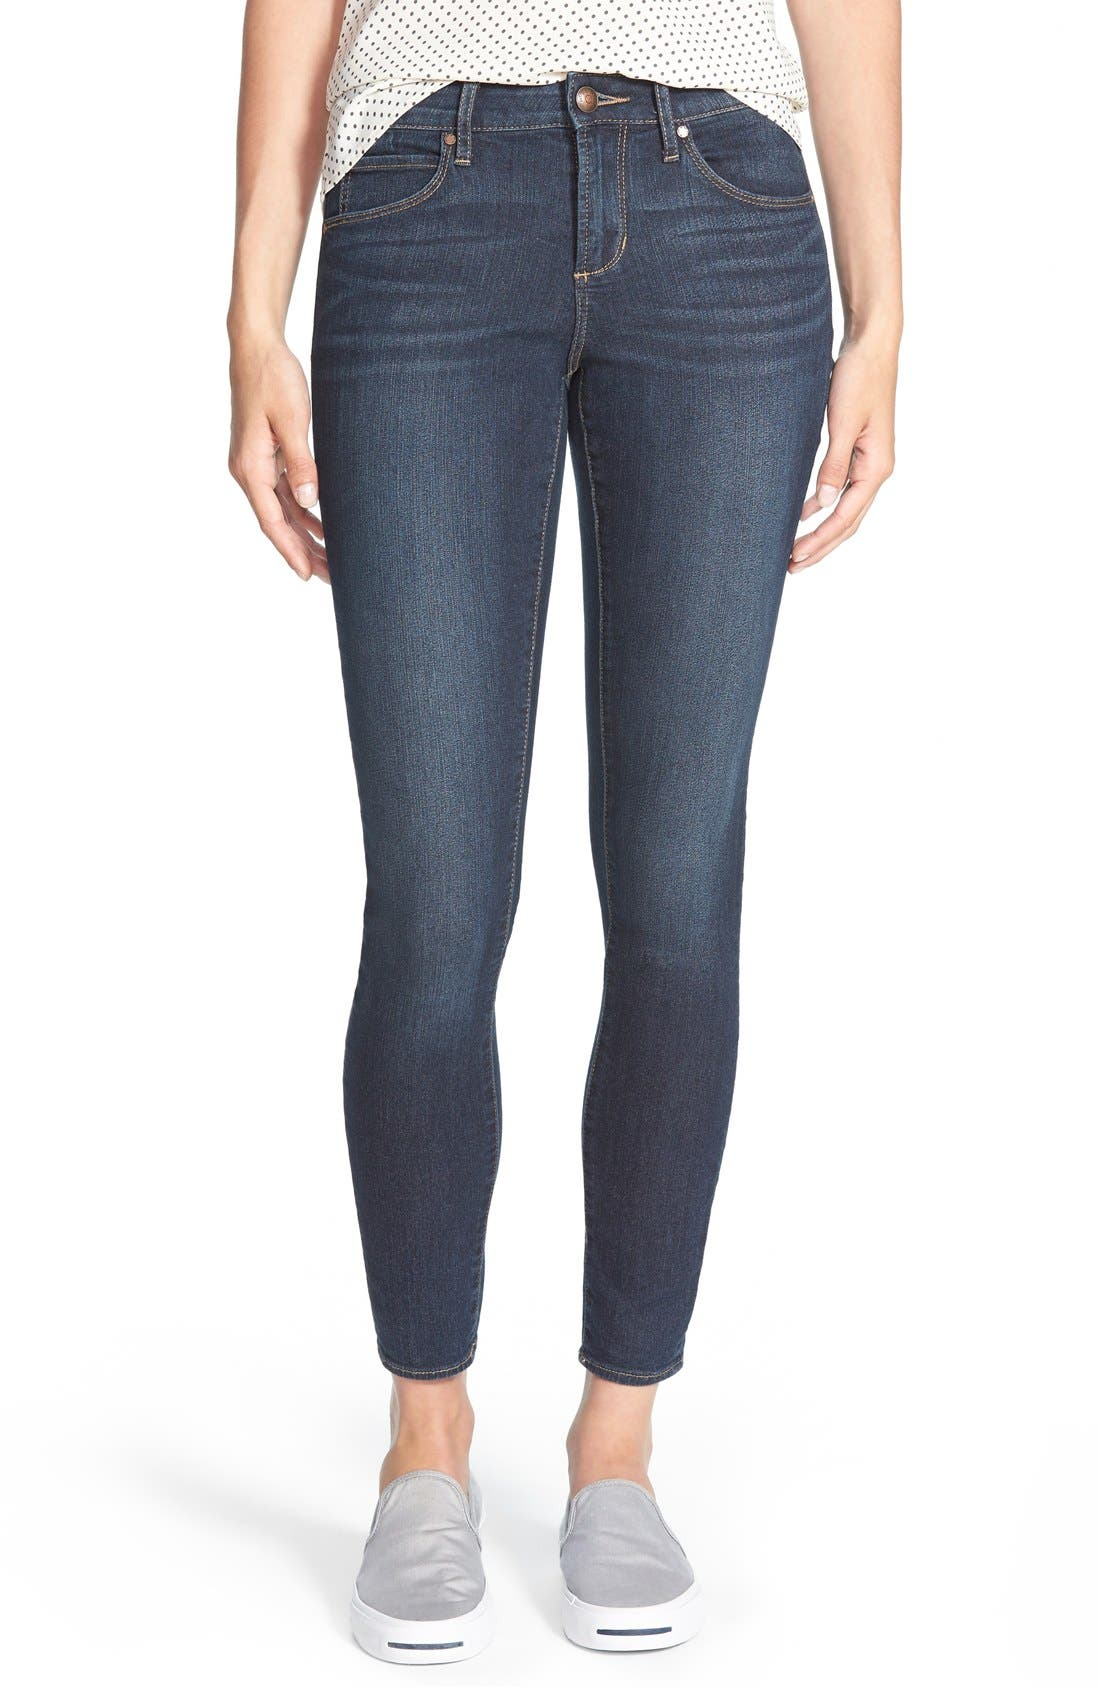 Alternate Image 1 Selected - Articles of Society 'Sarah' Skinny Jeans (Blue Moon)